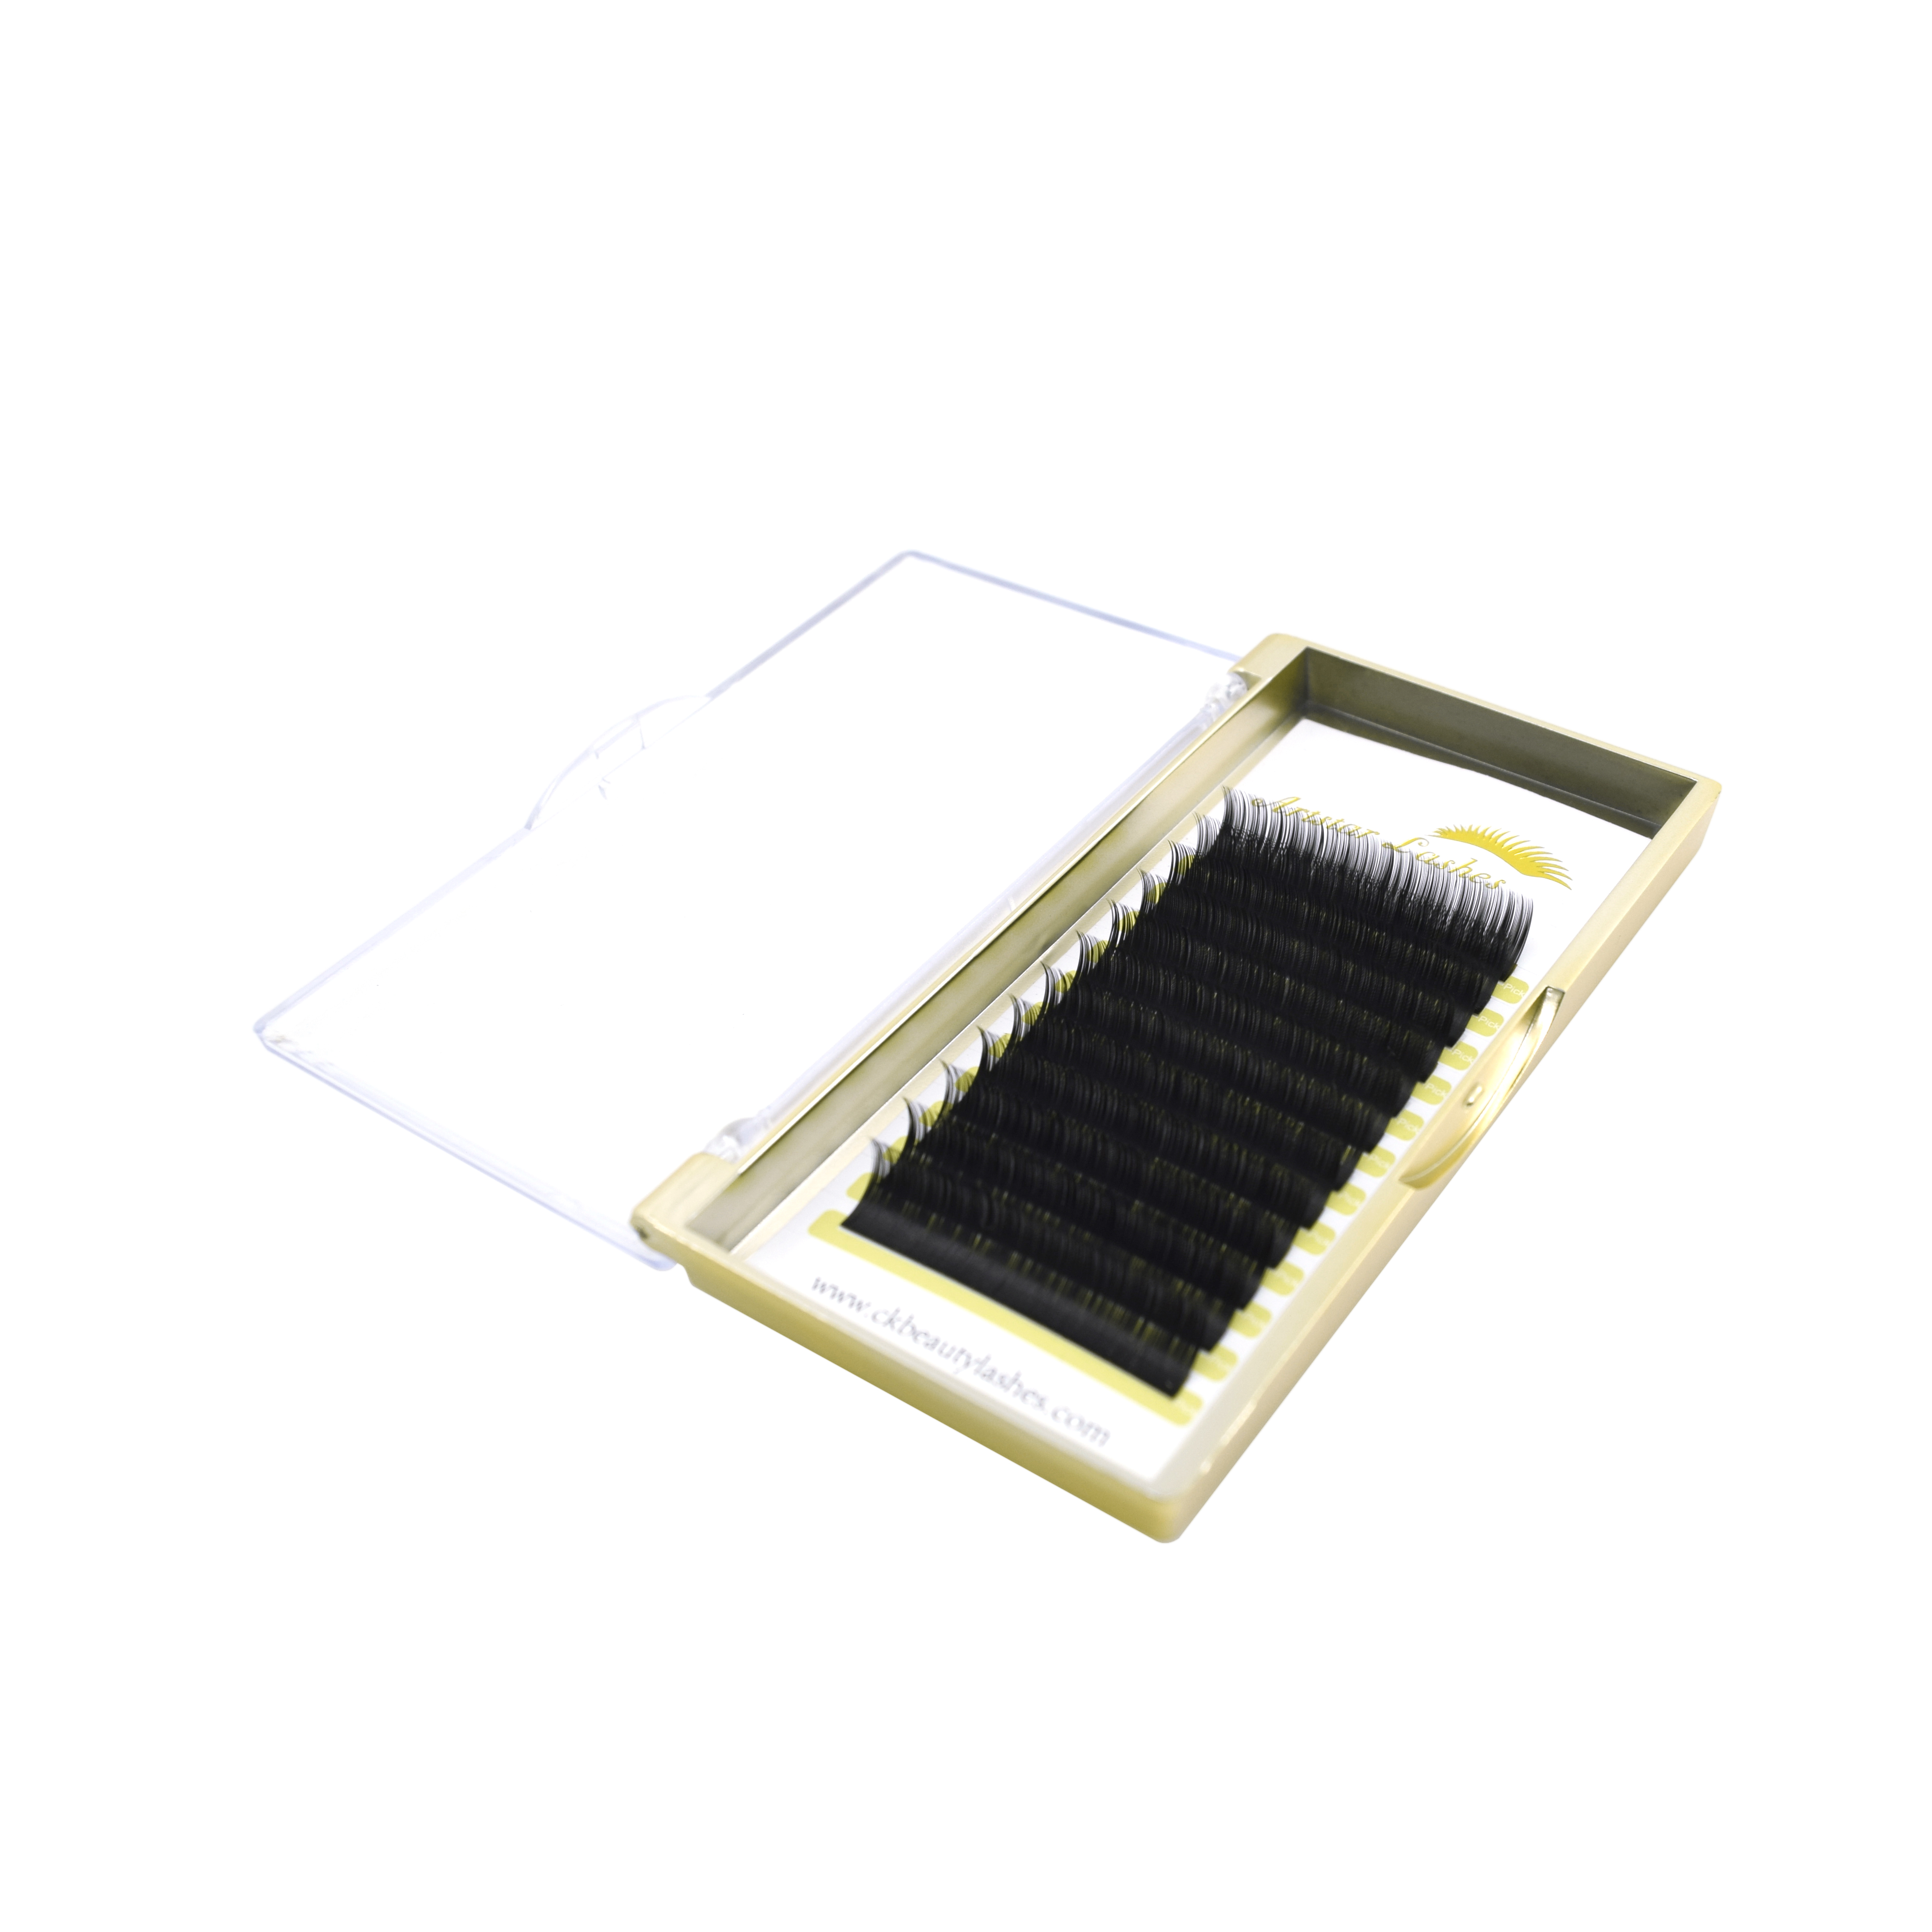 c087cfd6d01 China Rapid Eyelashes, China Rapid Eyelashes Manufacturers and Suppliers on  Alibaba.com